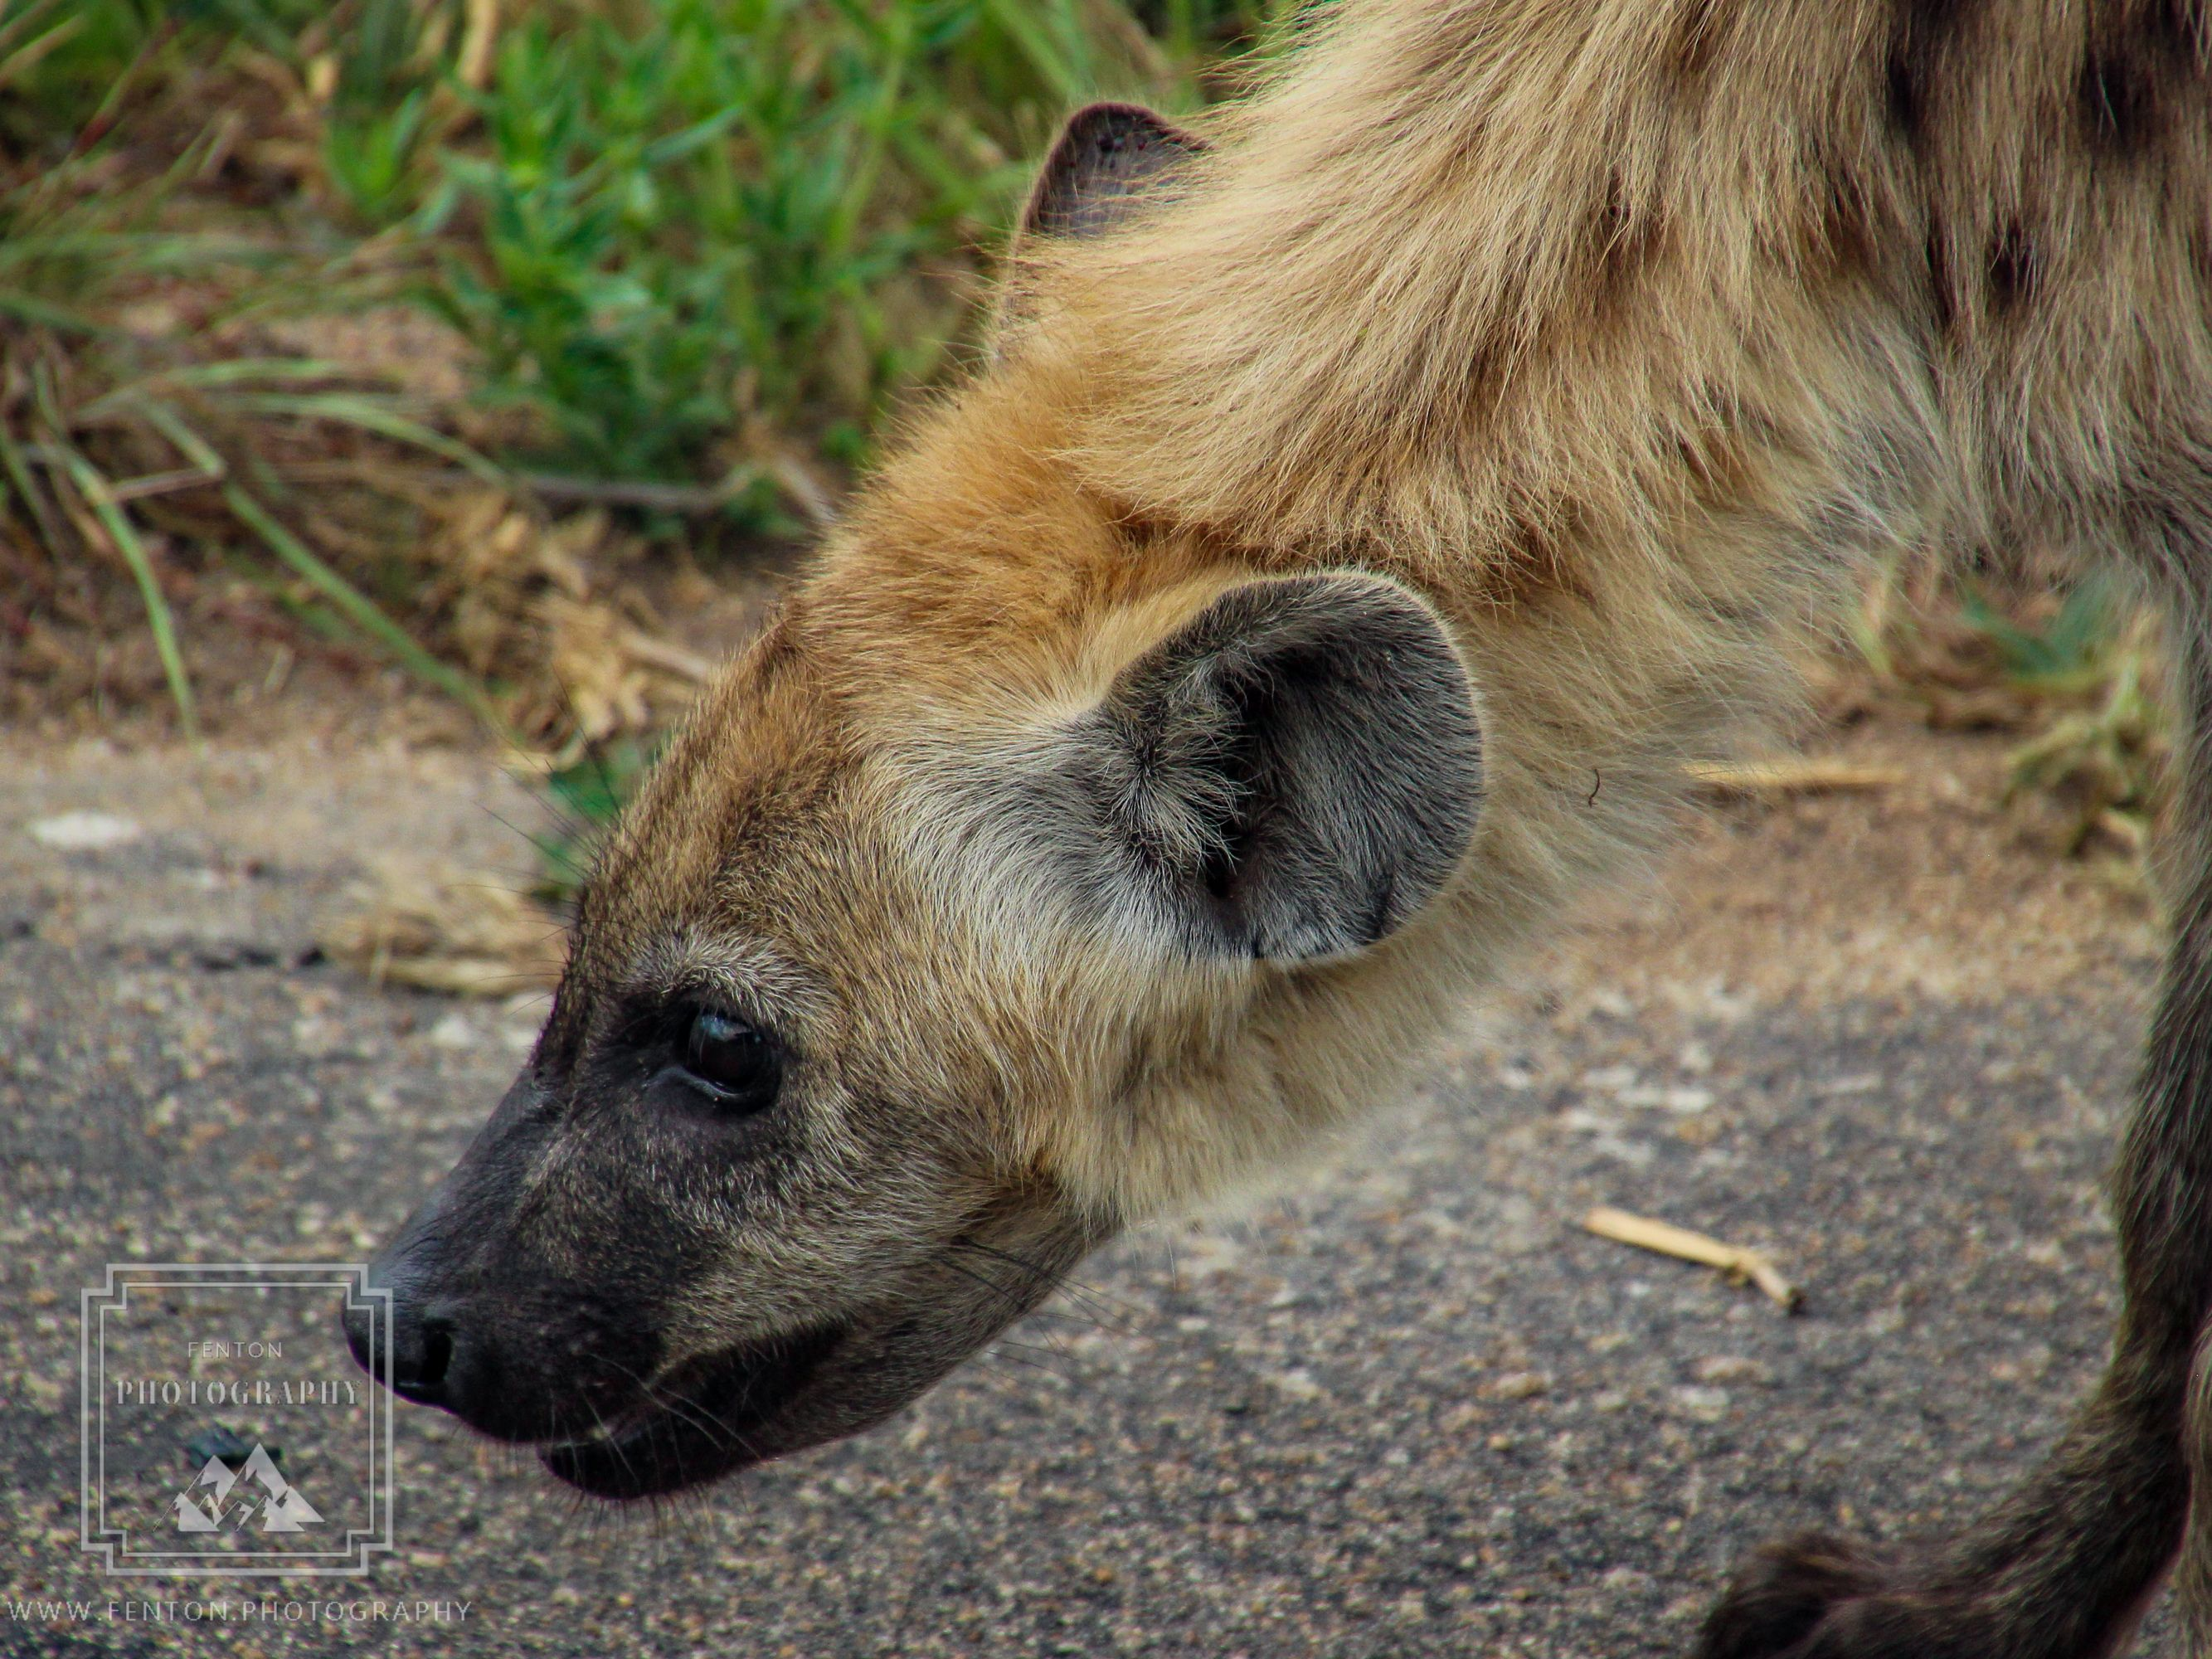 Another one of the Ugly 5 - This hyena was the only one that we saw on our safari.  #ugly_5 #hyena #wildlife #wild_animal #fauna #ears #safari @KrugerNational @SouthAfrica #SouthAfrica @gadventures @NatGeo @NatGeoTravel @natgeoyourshot